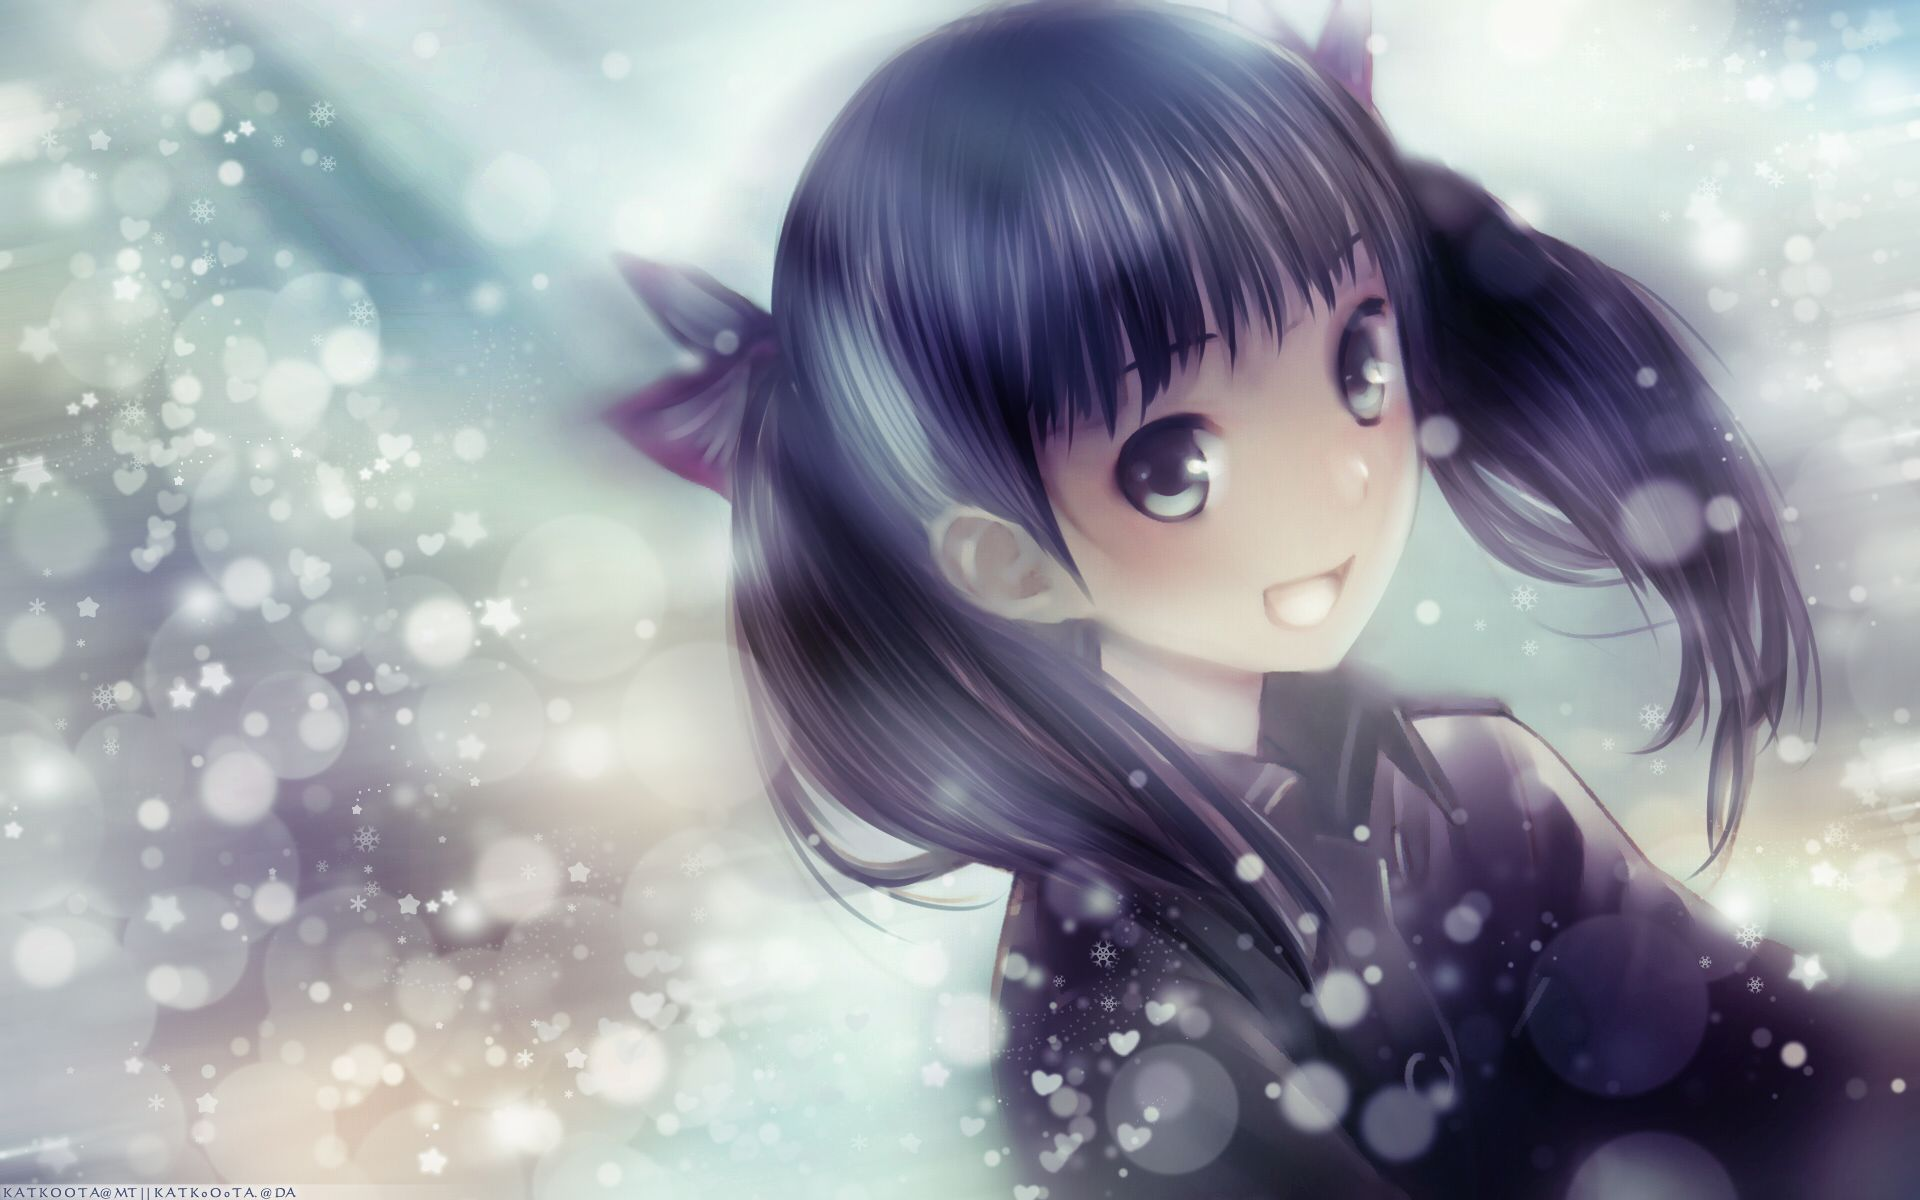 Anime Cute Girl HD Widescreen Desktop Wallpaper yay